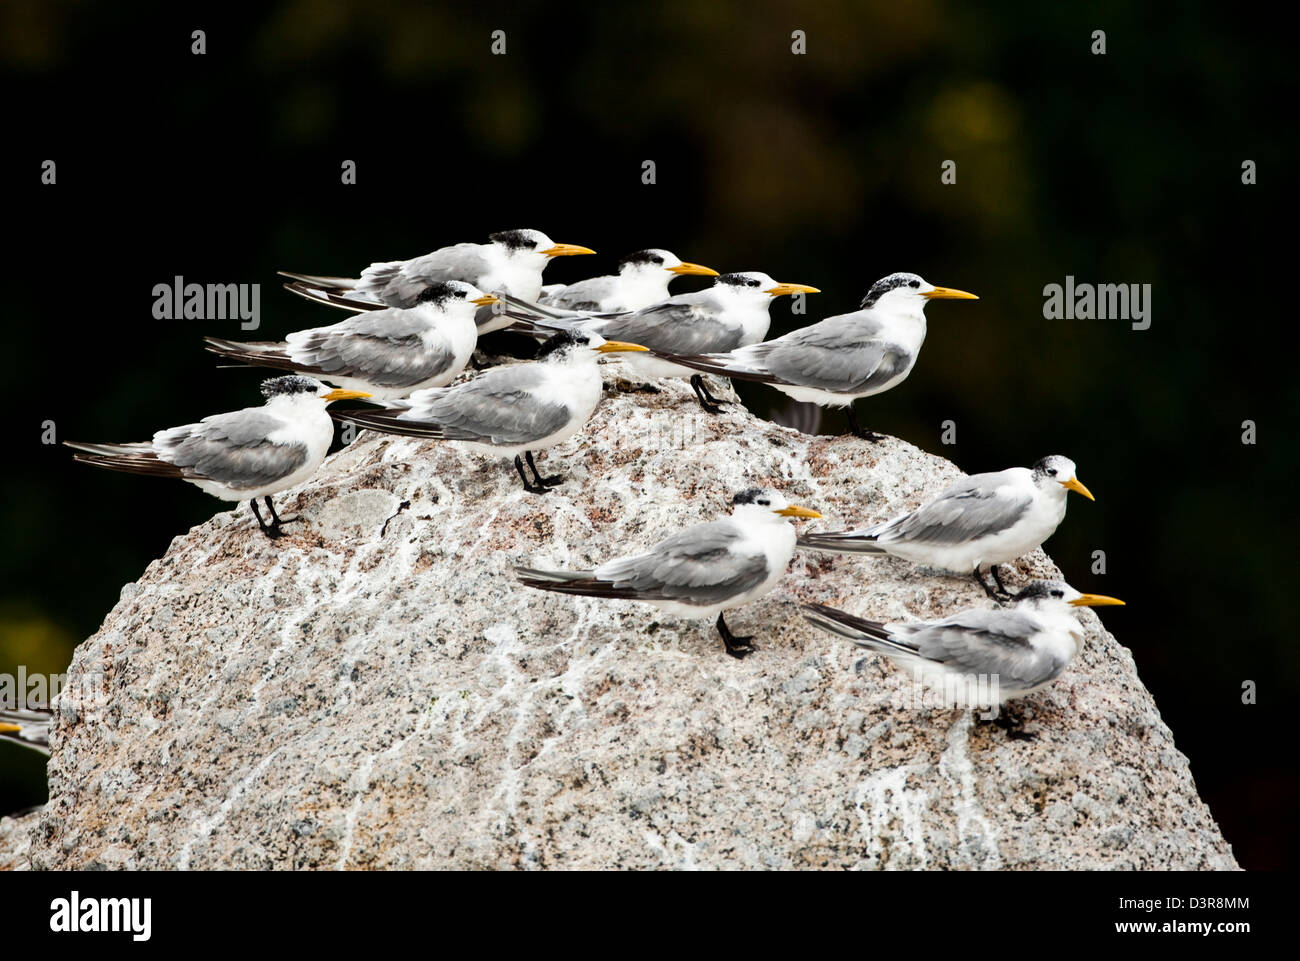 Birds standing on rock all looking in same direction - Stock Image